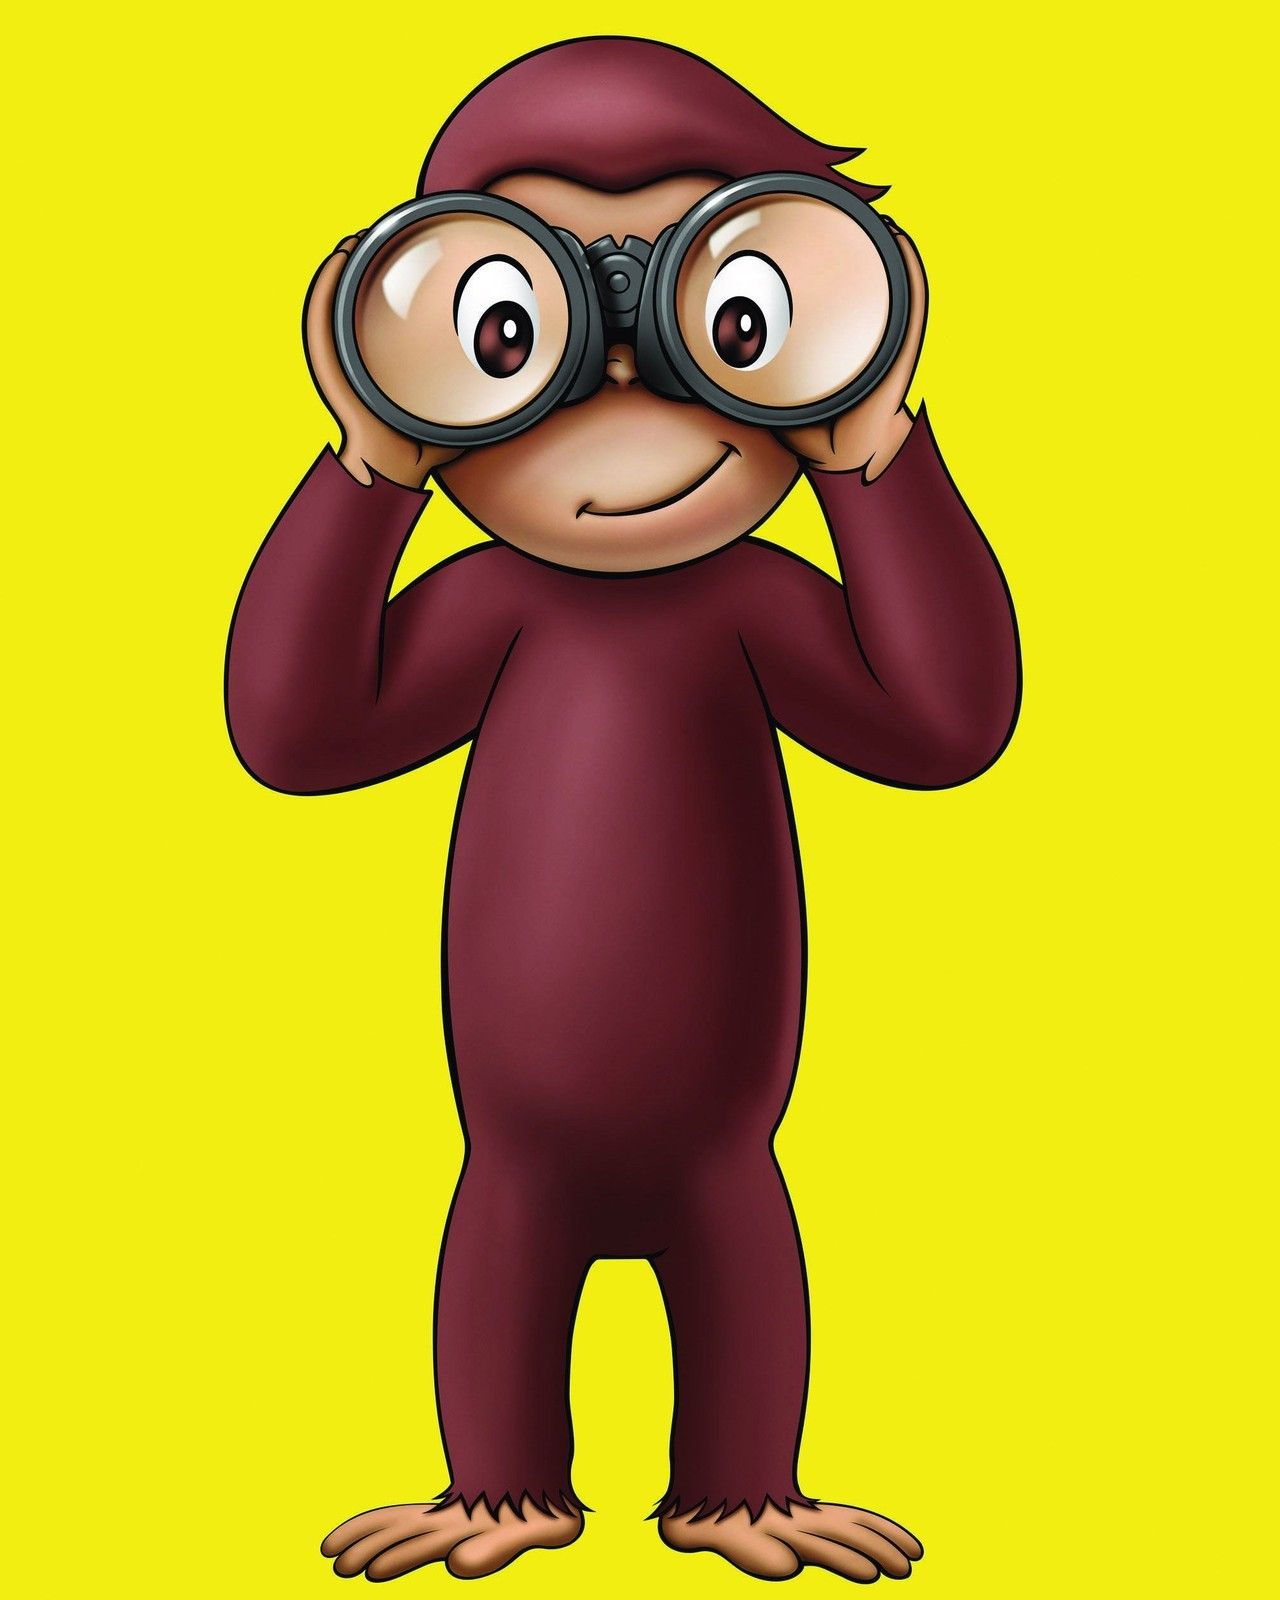 Details About Curious George 8 X 10 8x10 Glossy Photo Picture